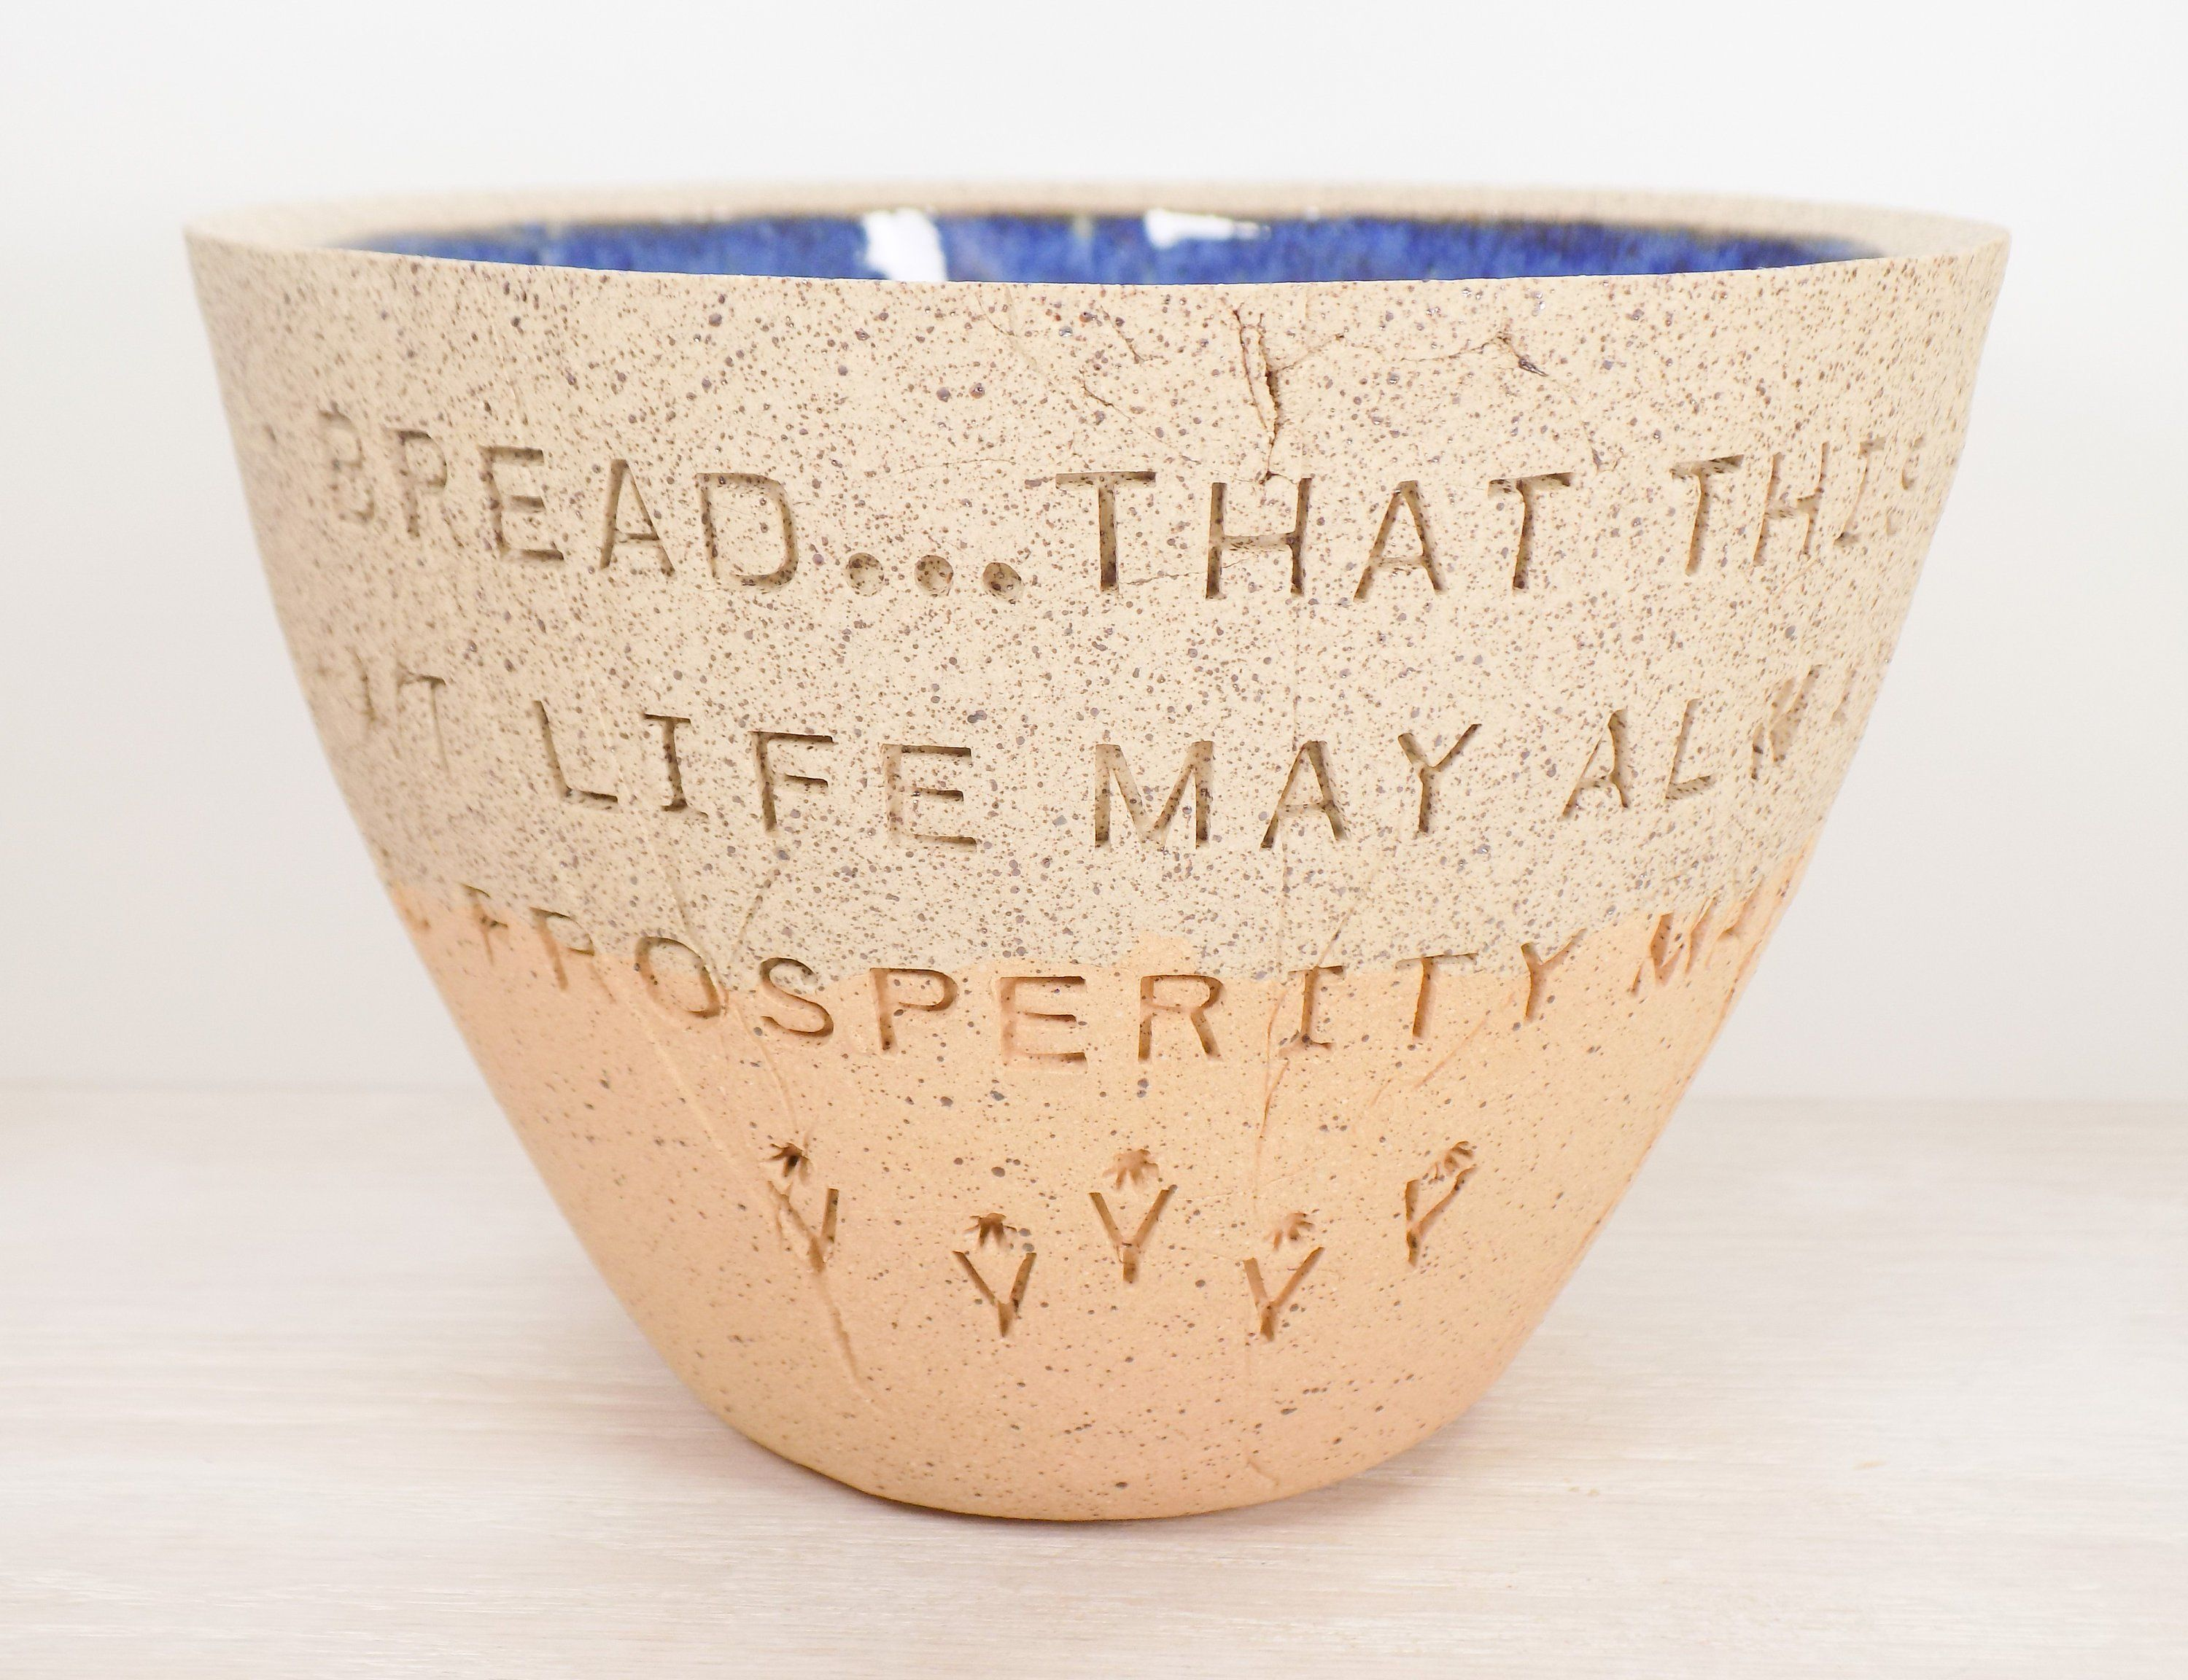 Bread salt wine quote pottery bowl blessing pottery bowl